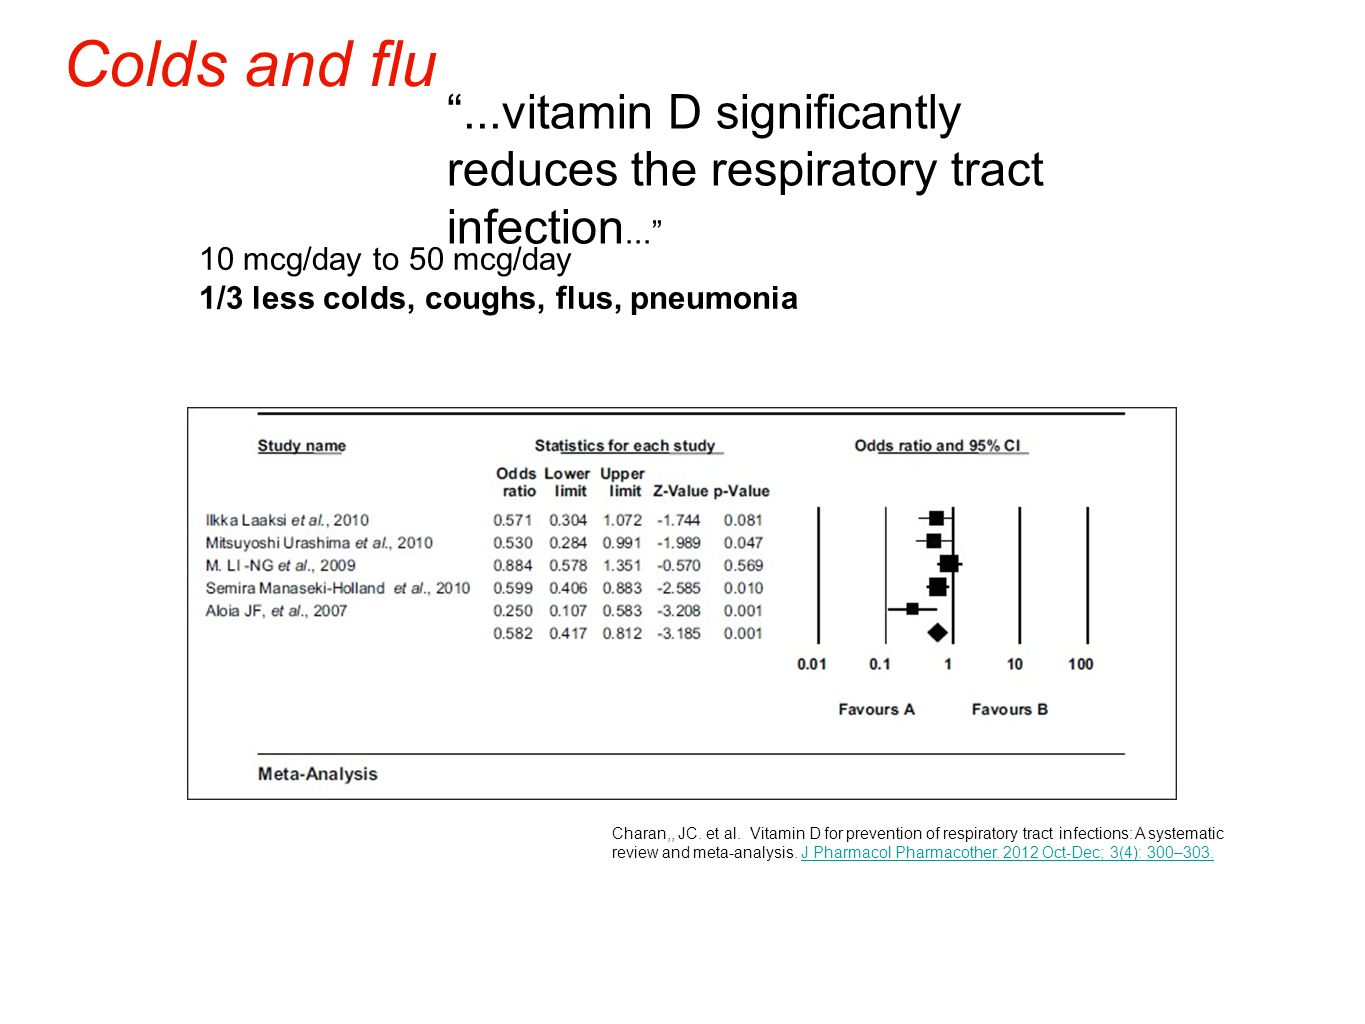 ...vitamin D significantly reduces the respiratory tract infection...